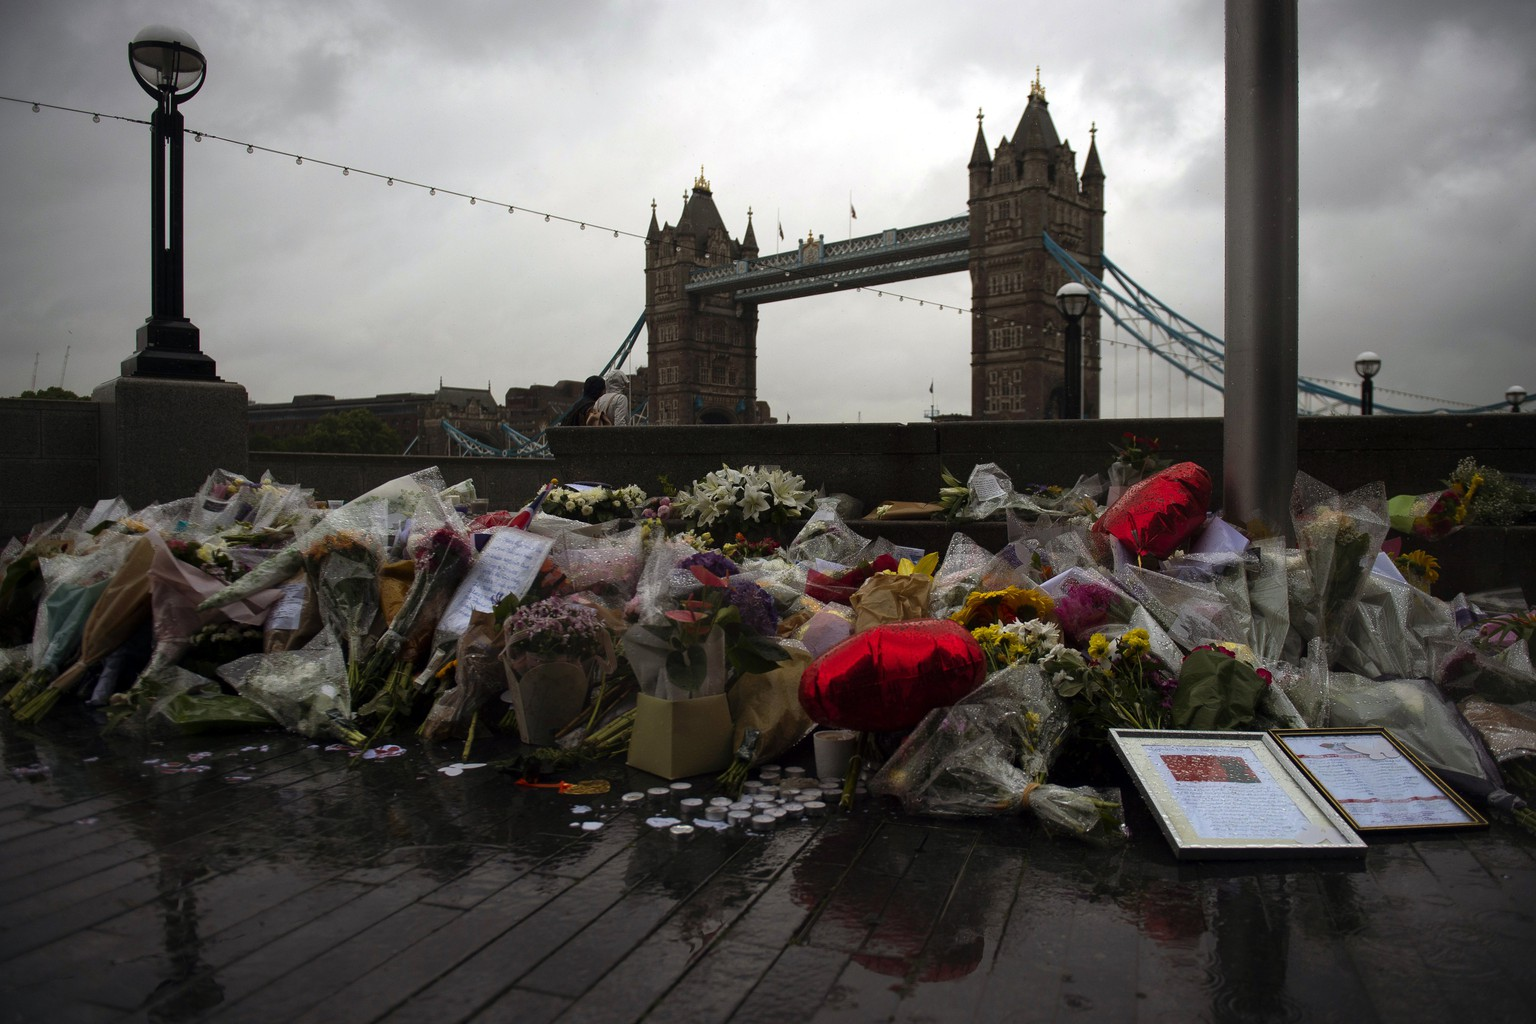 epa06012937 Flowers and tributes left outside City Hall, near Tower Bridge for victims of the London Bridge terror attacks in Central London, Britain, 06 June 2017. Seven people have lost their lives and 48 people have been injured after three attackers drove a van into crowds on London Bridge and then went on a stabbing rampage. The three attackers wearing fake suicide vests were shot dead by police who are treating the attack as a 'terrorist incident'.  EPA/WILL OLIVER